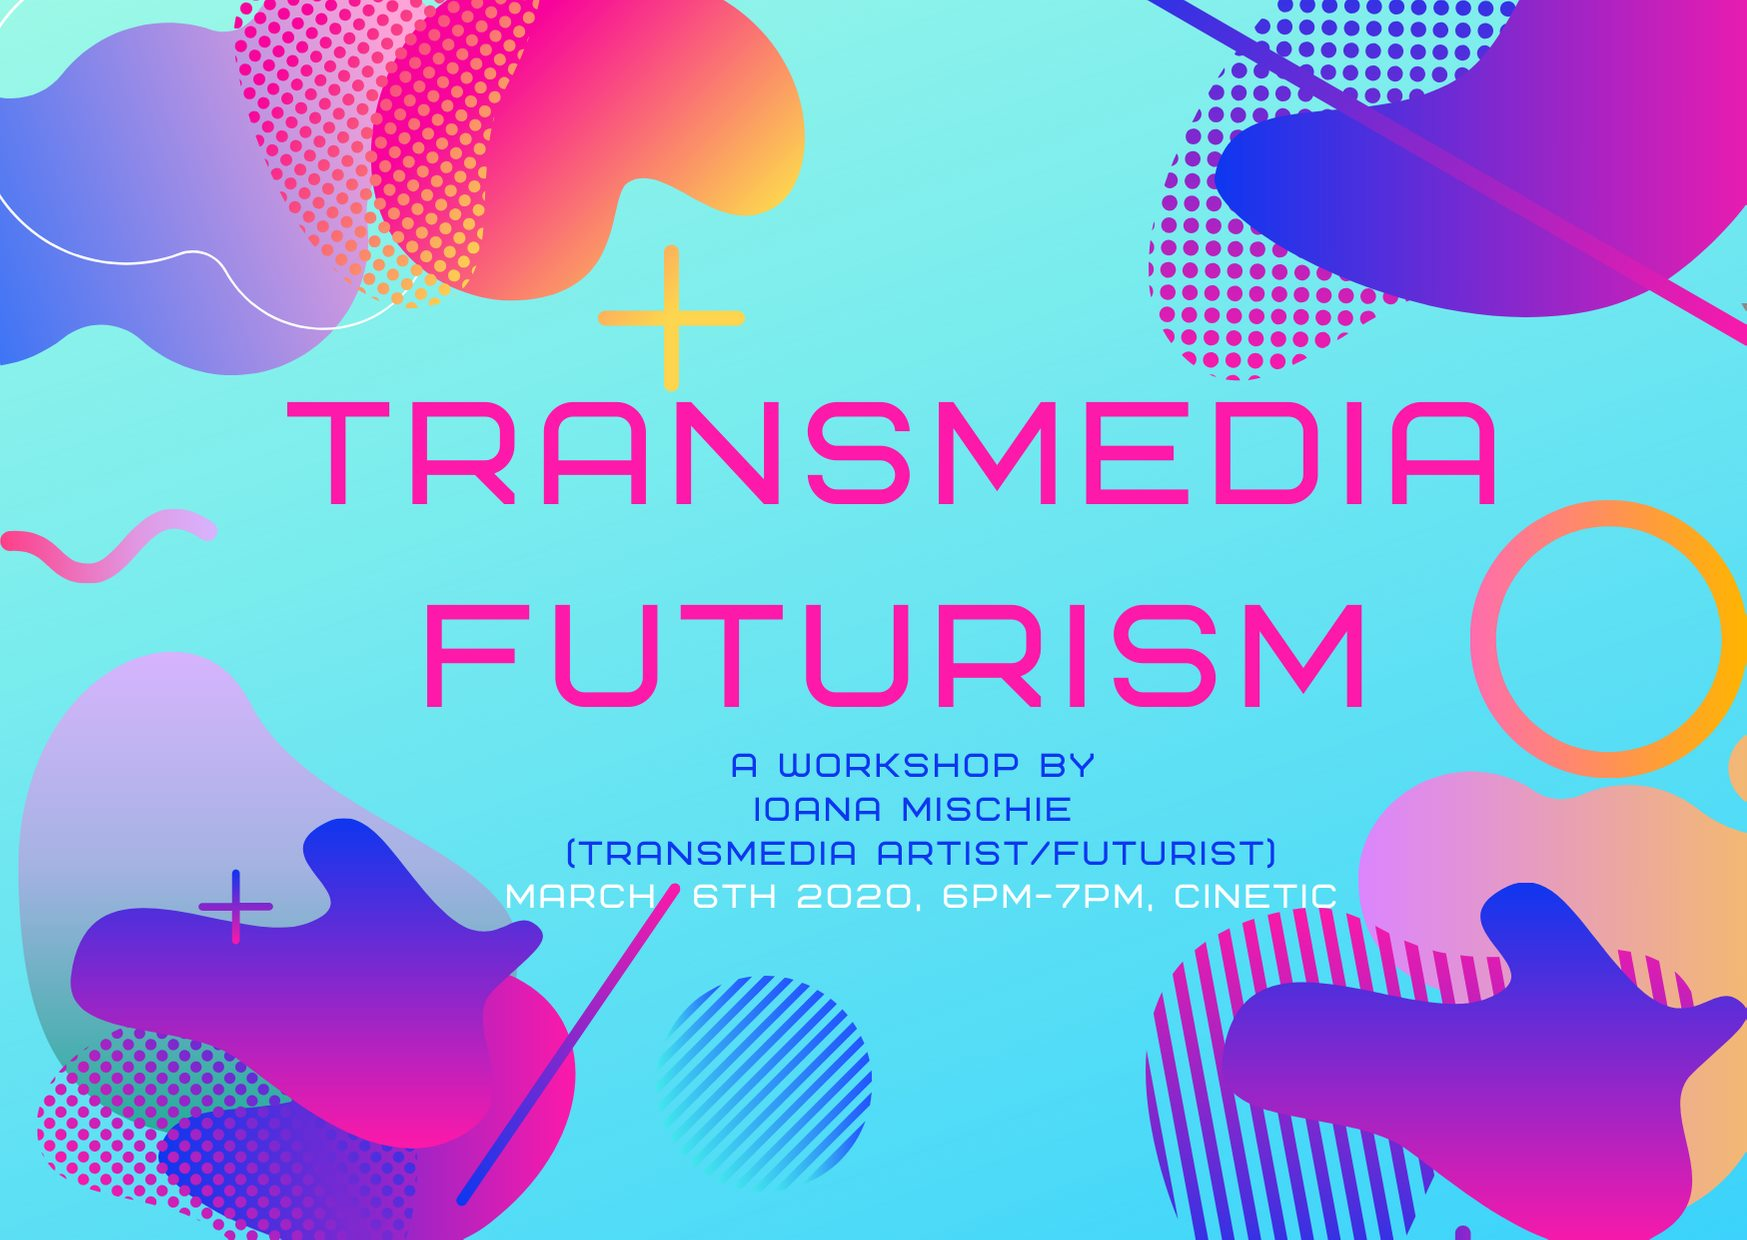 Transmedia Futurism Workshop